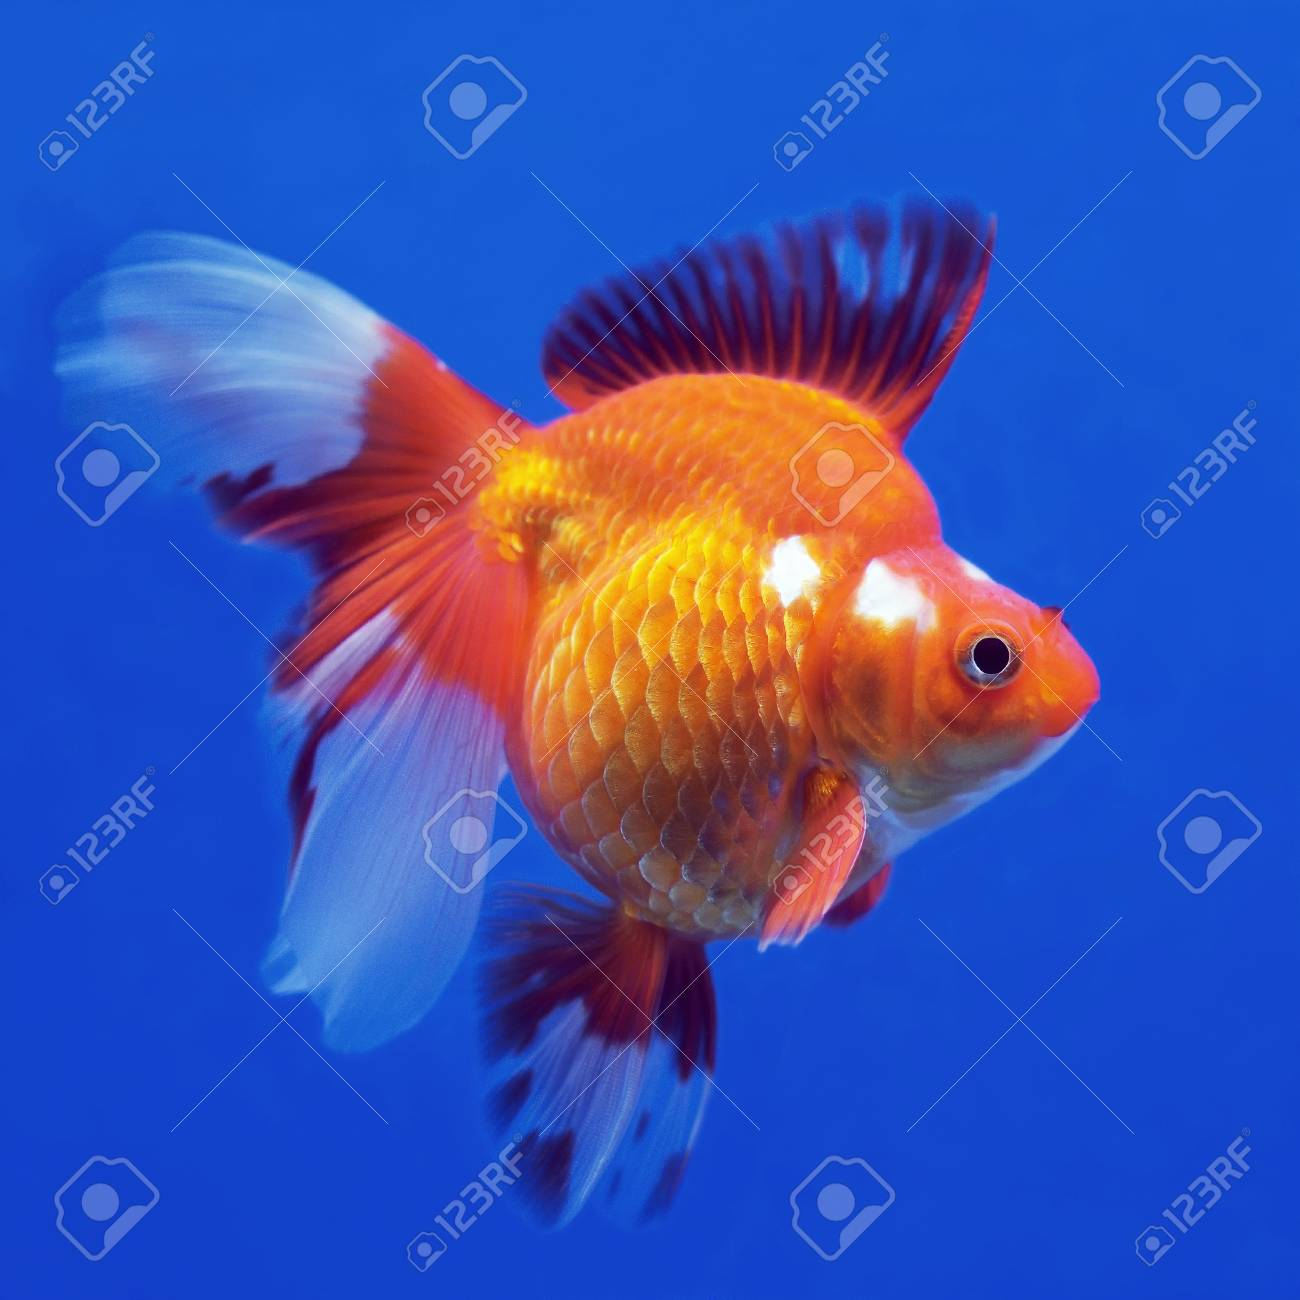 Beautiful Goldfish In The Aquarium Stock Photo Picture And Royalty Free Image Image 33110442